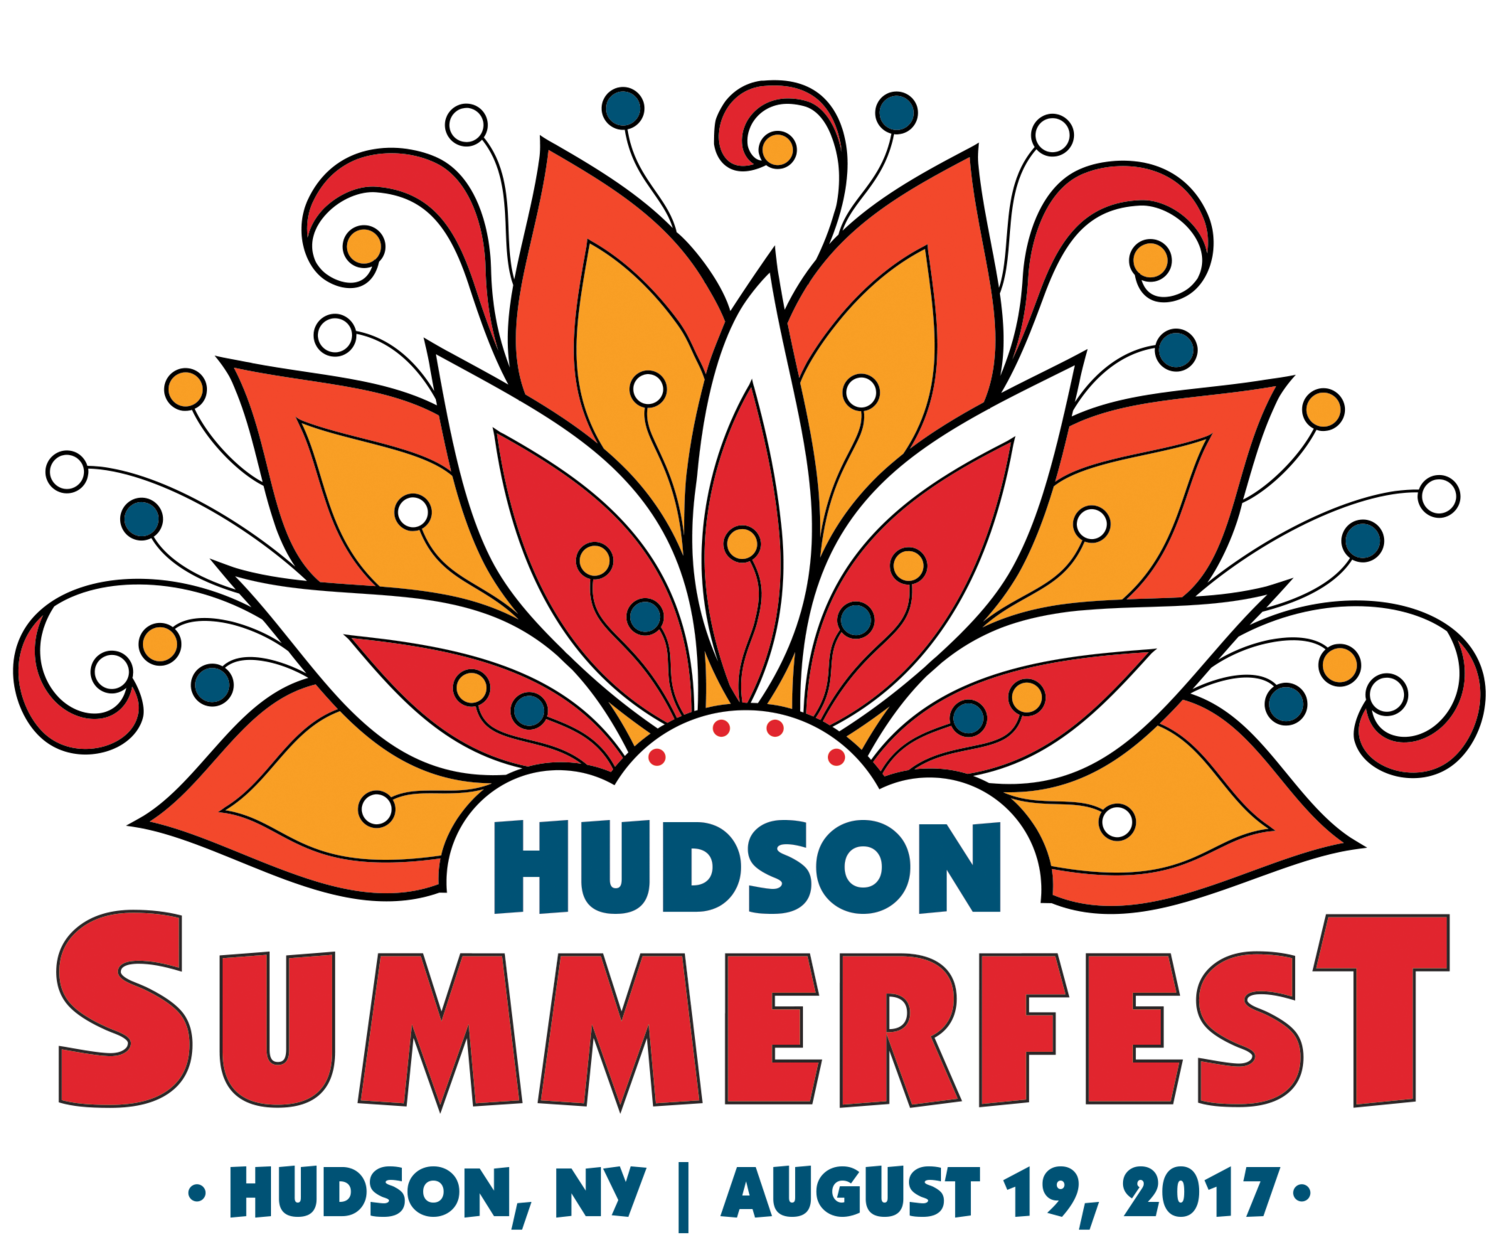 Hudson summerfest . Writer clipart finished work